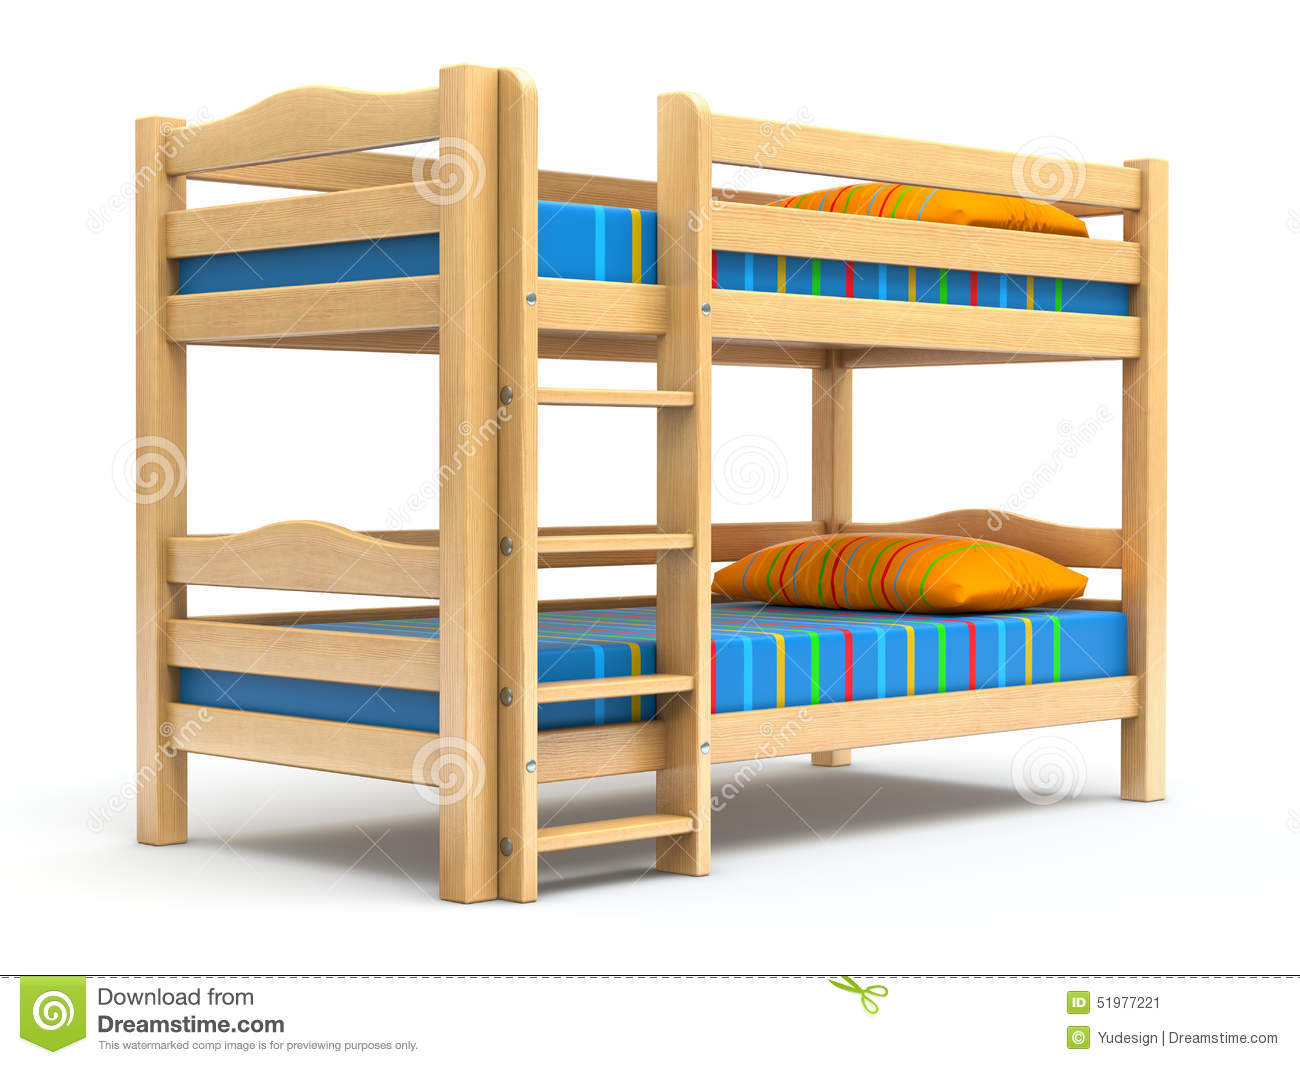 Wooden kids bunk bed on white background - 3D illustration